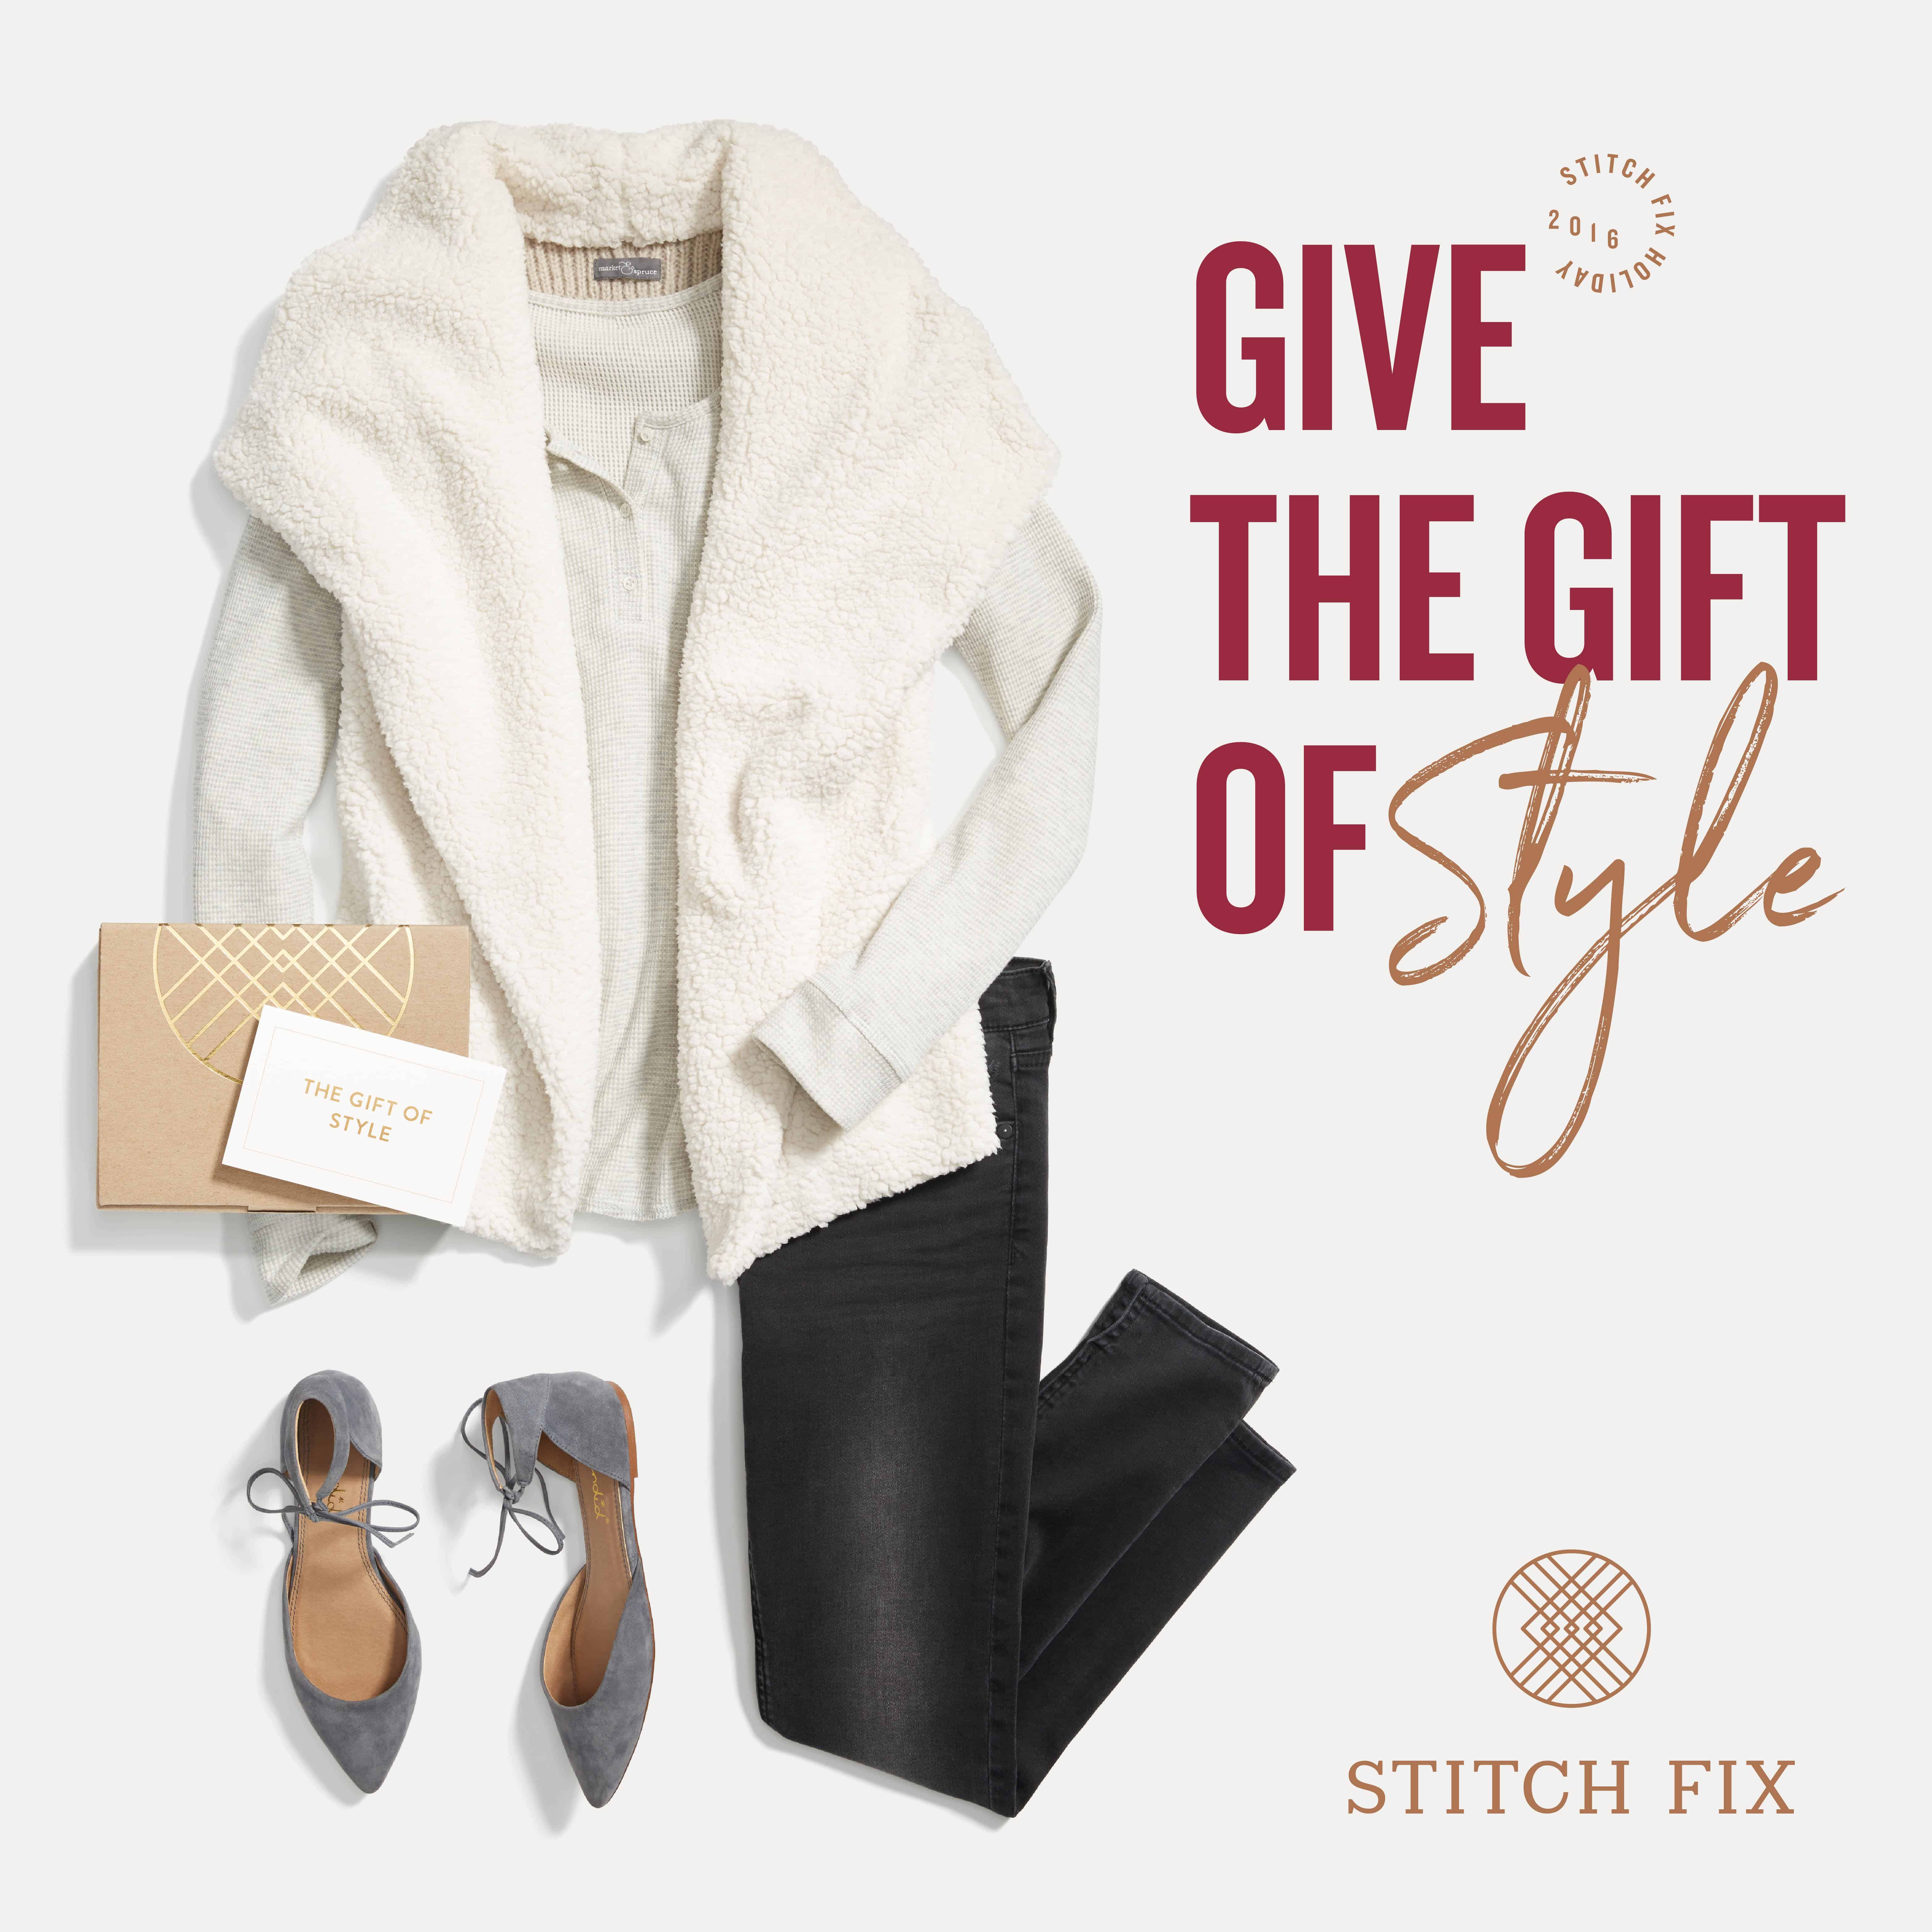 This ultimate gift guide for the lady has a great collection of gifts for any lady in your life, like a personal shopper from Stitch Fix!